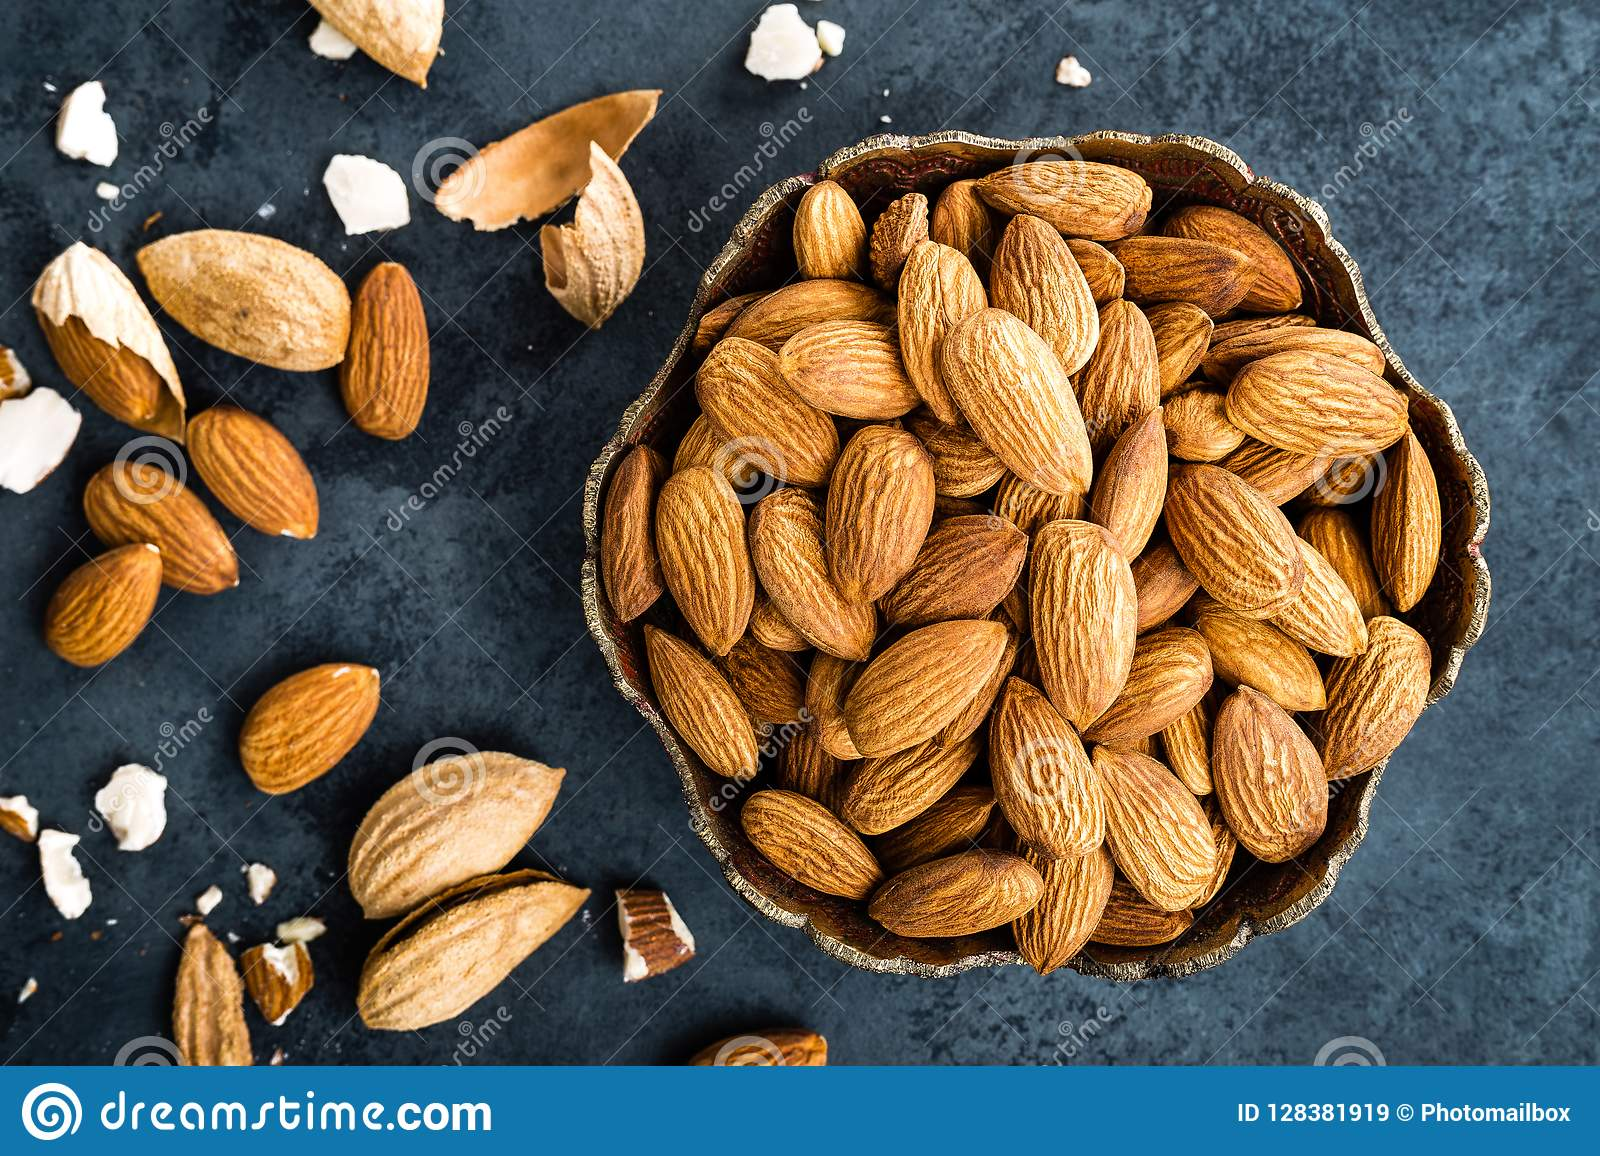 Almond Nuts In Bowl. Almonds Stock Image - Image of health ...